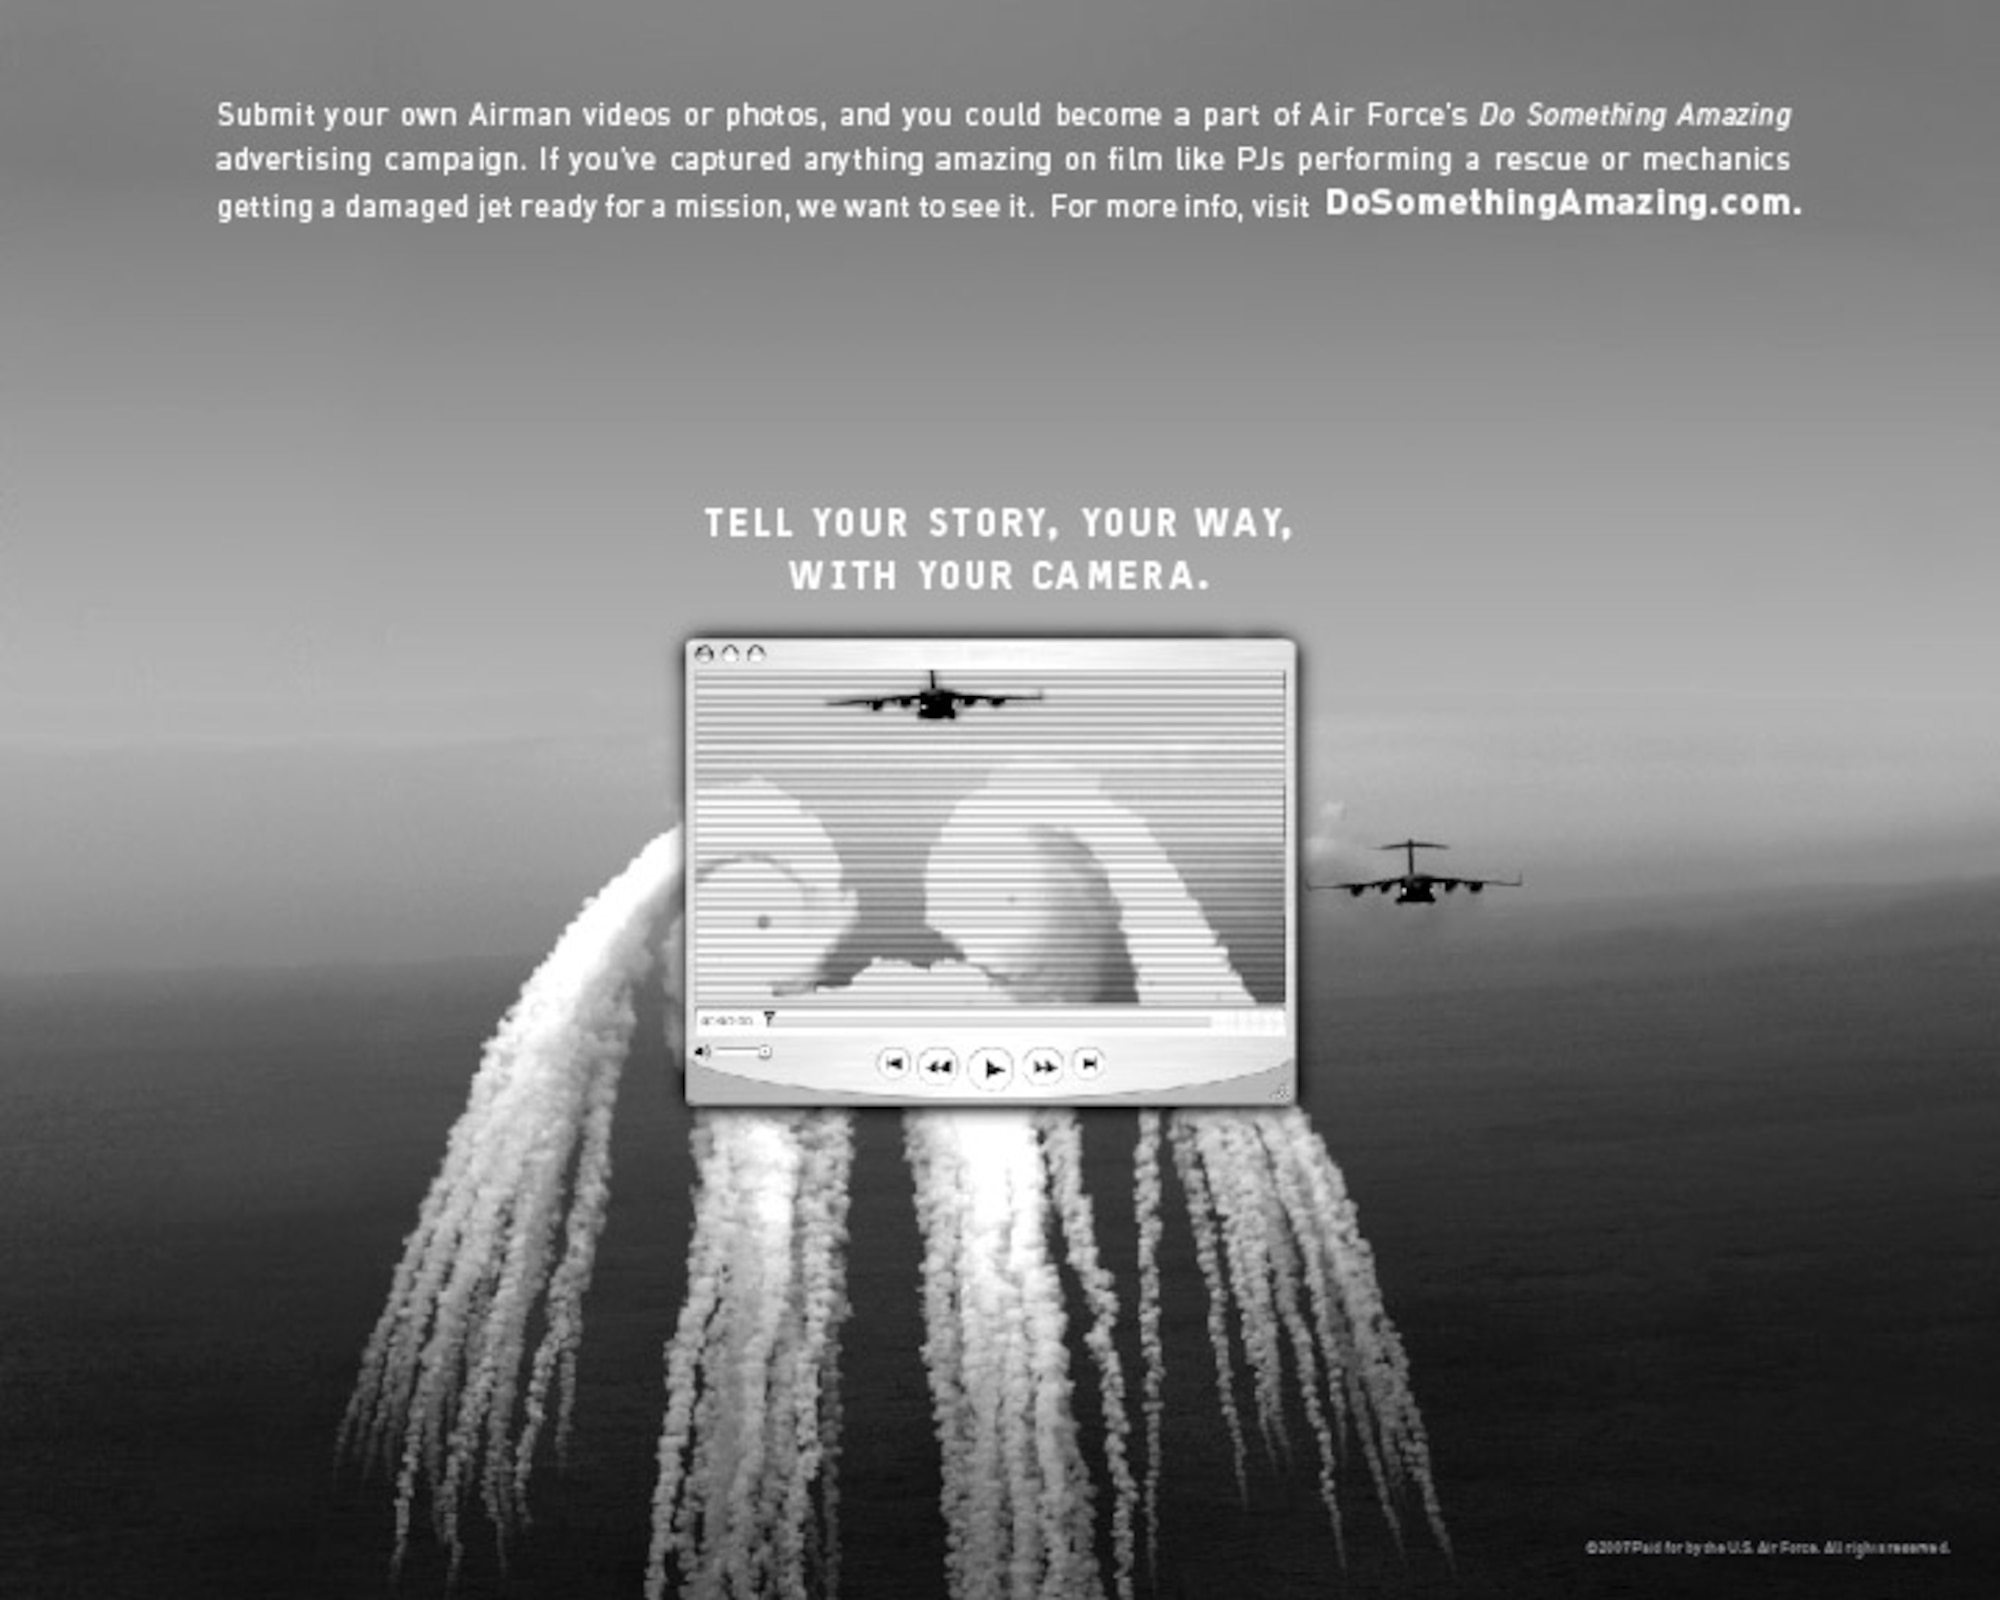 """As part of the """"Do Something Amazing"""" national advertising campaign, Air Force officials are offering Airmen the opportunity to submit videos showing Air Force members in action, the best of which will be posted to the official Web site at www.dosomethingamazing.com. (U.S. Air Force photo)"""